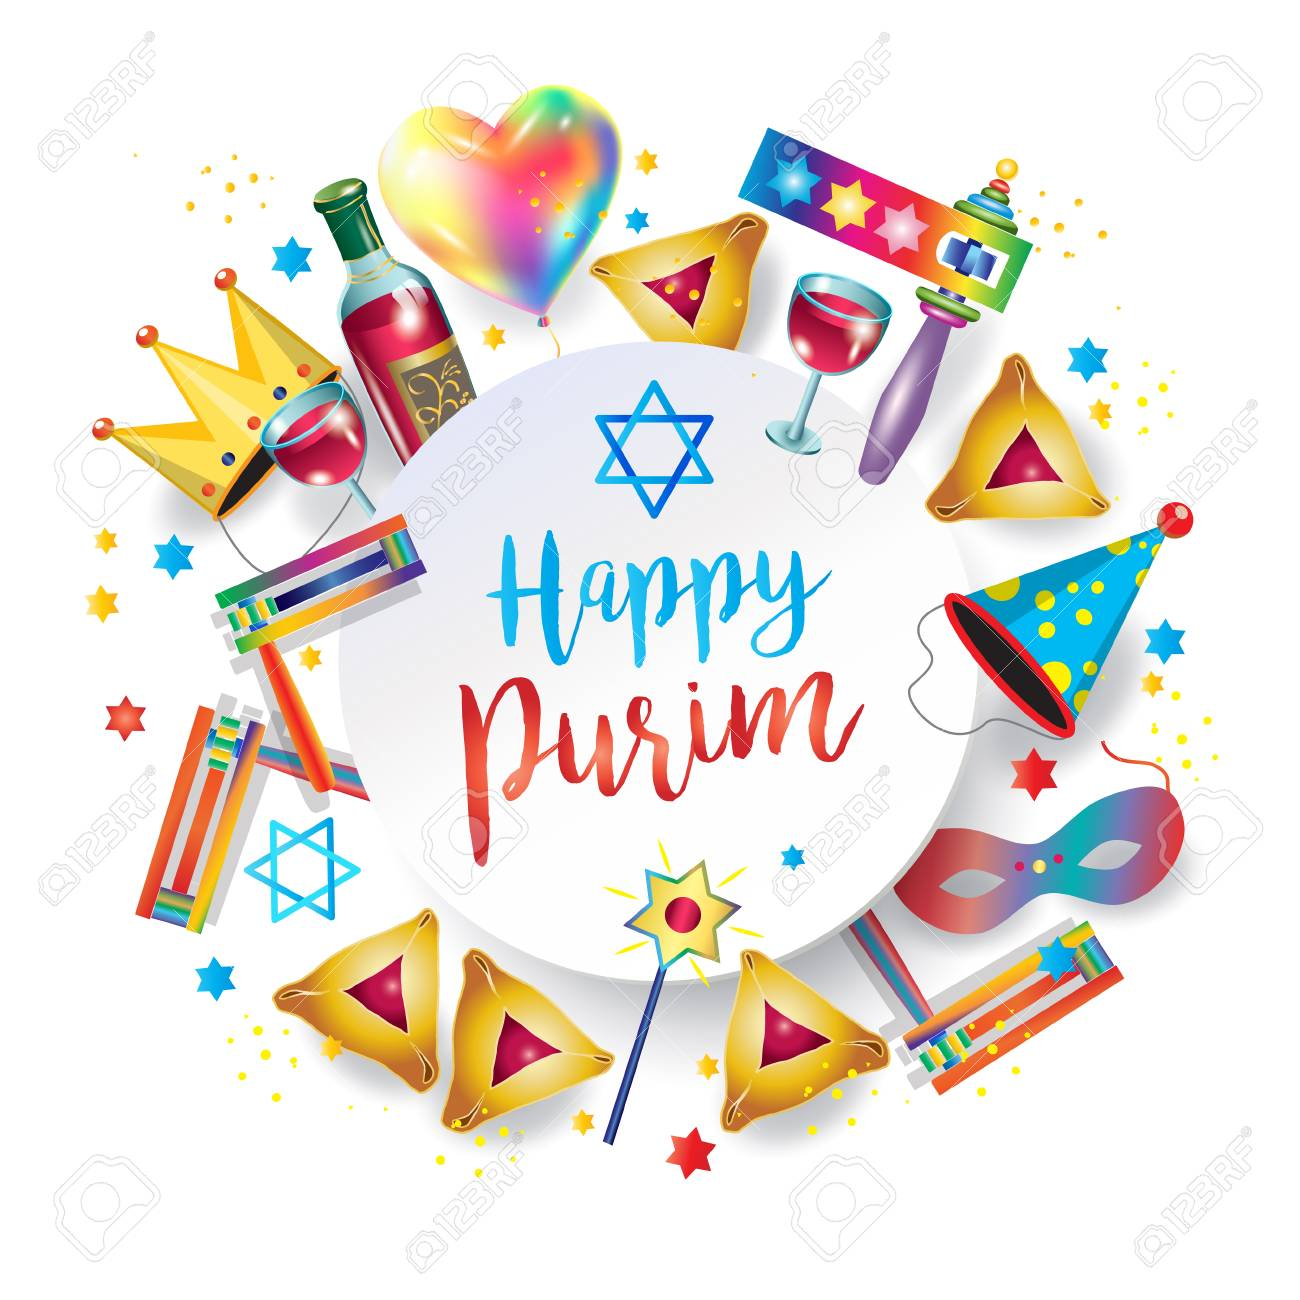 Image result for purim images